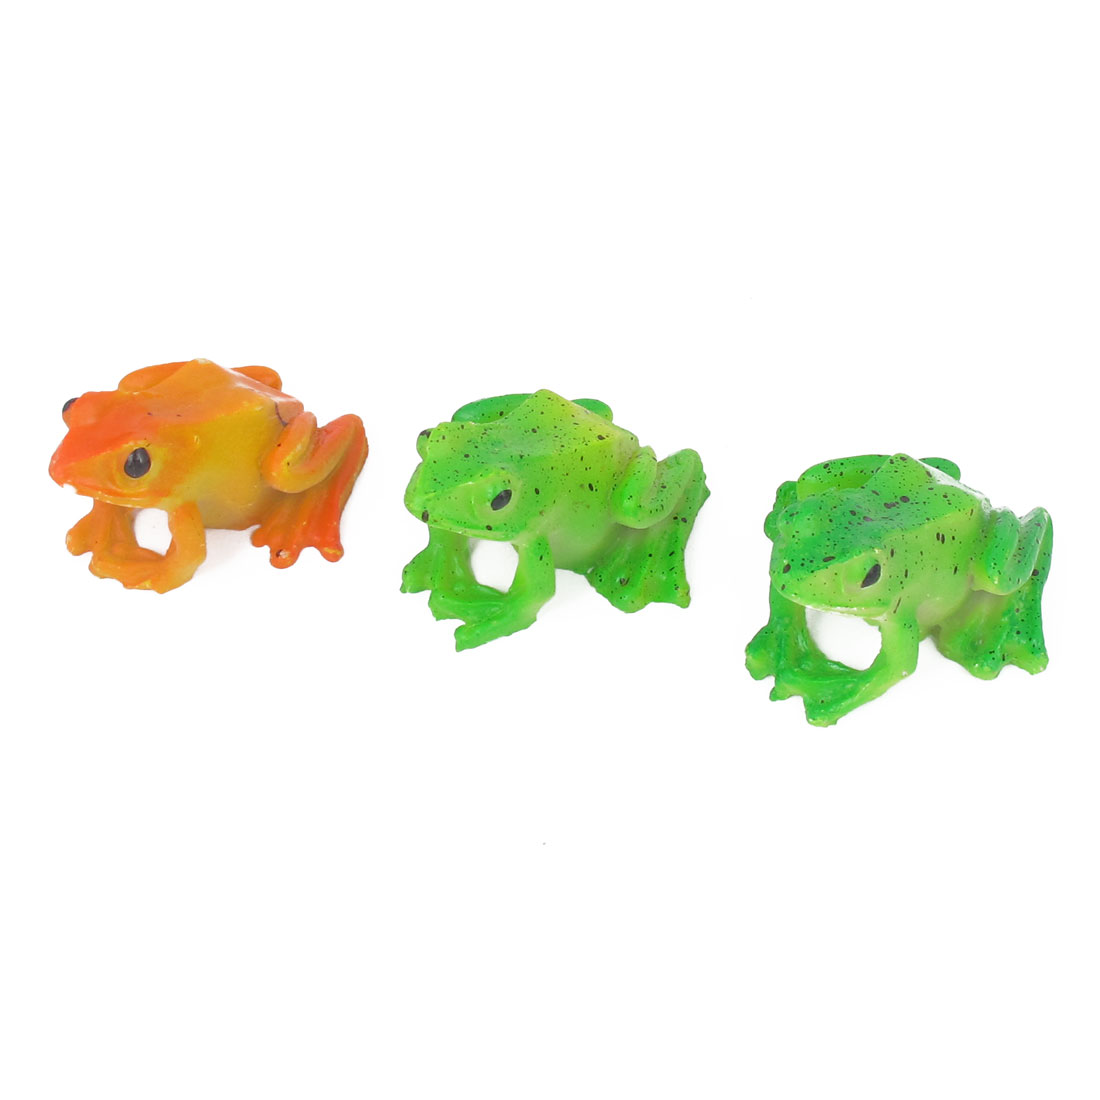 Aquarium Fish Tank Aquascaping Plastic Artifical Frog Design Decoration Orange Green 3pcs